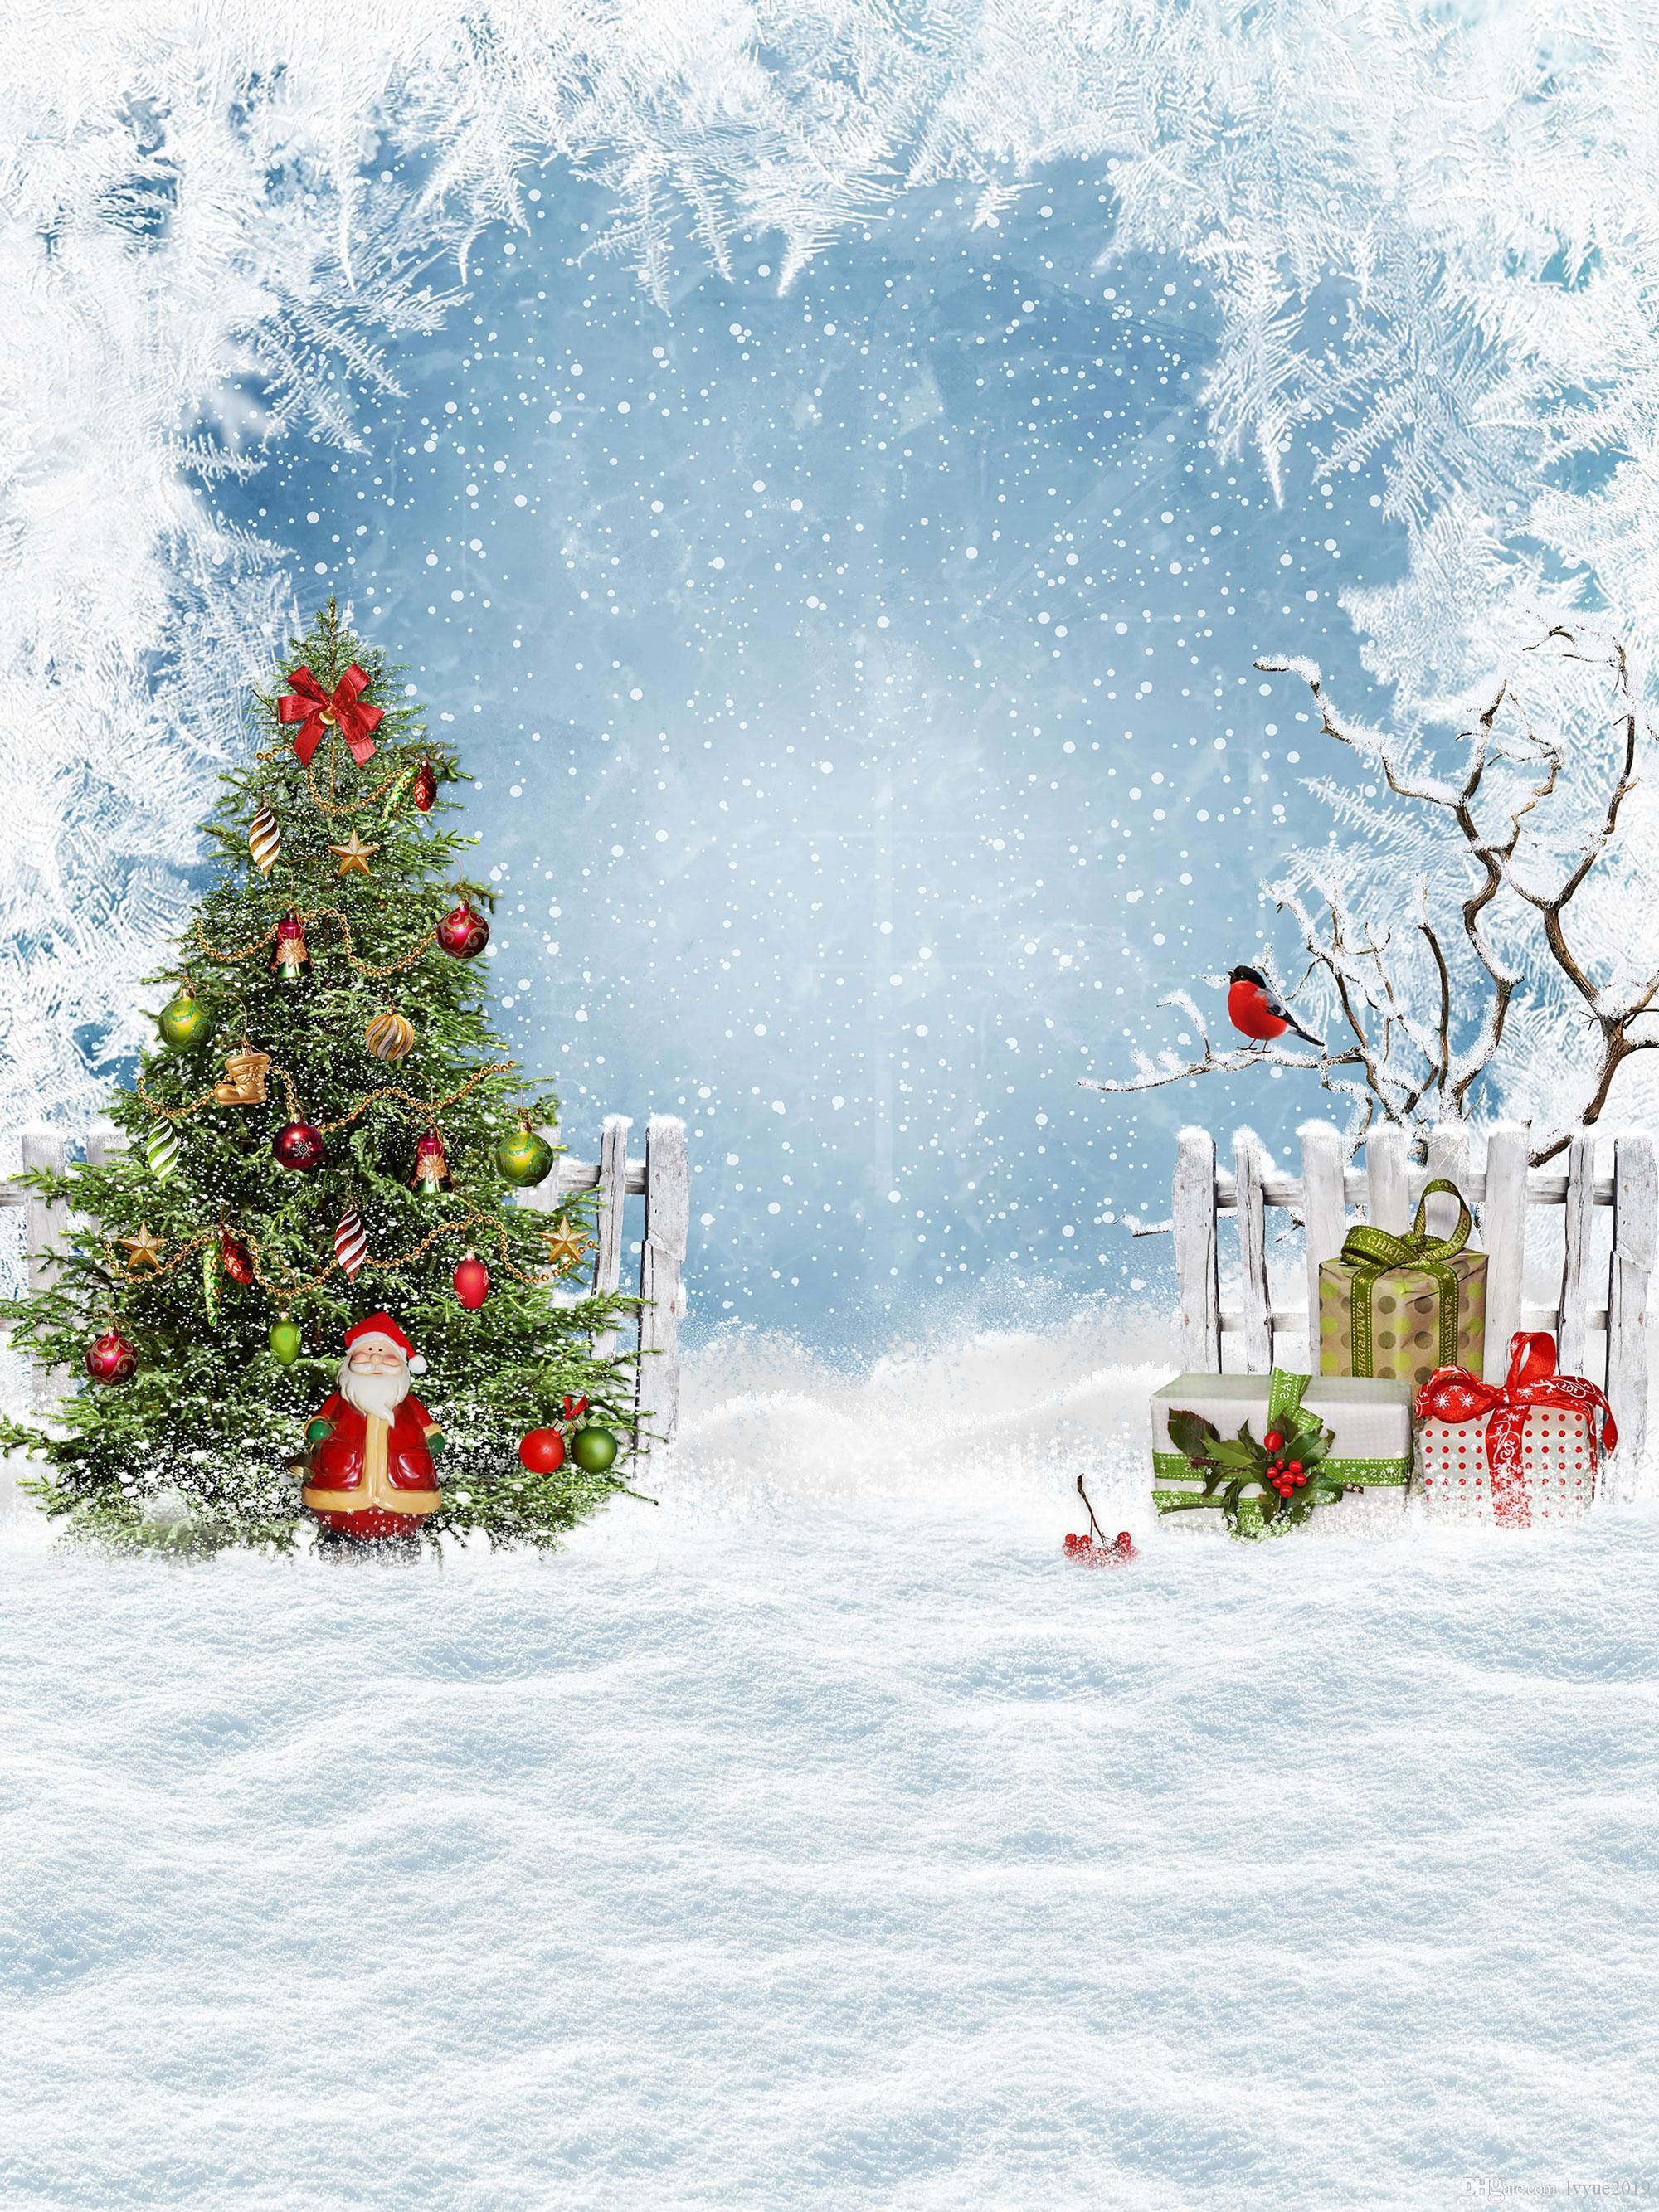 Buy Cheap Background Material In Bulk From China Dropshipping Suppliers Christmas Tree Santa Claus And Gifts Vinyl Photography Backdrops Snow Ground Photo Boot Christmas Backdrops Photo Booth Background Santa Claus Christmas